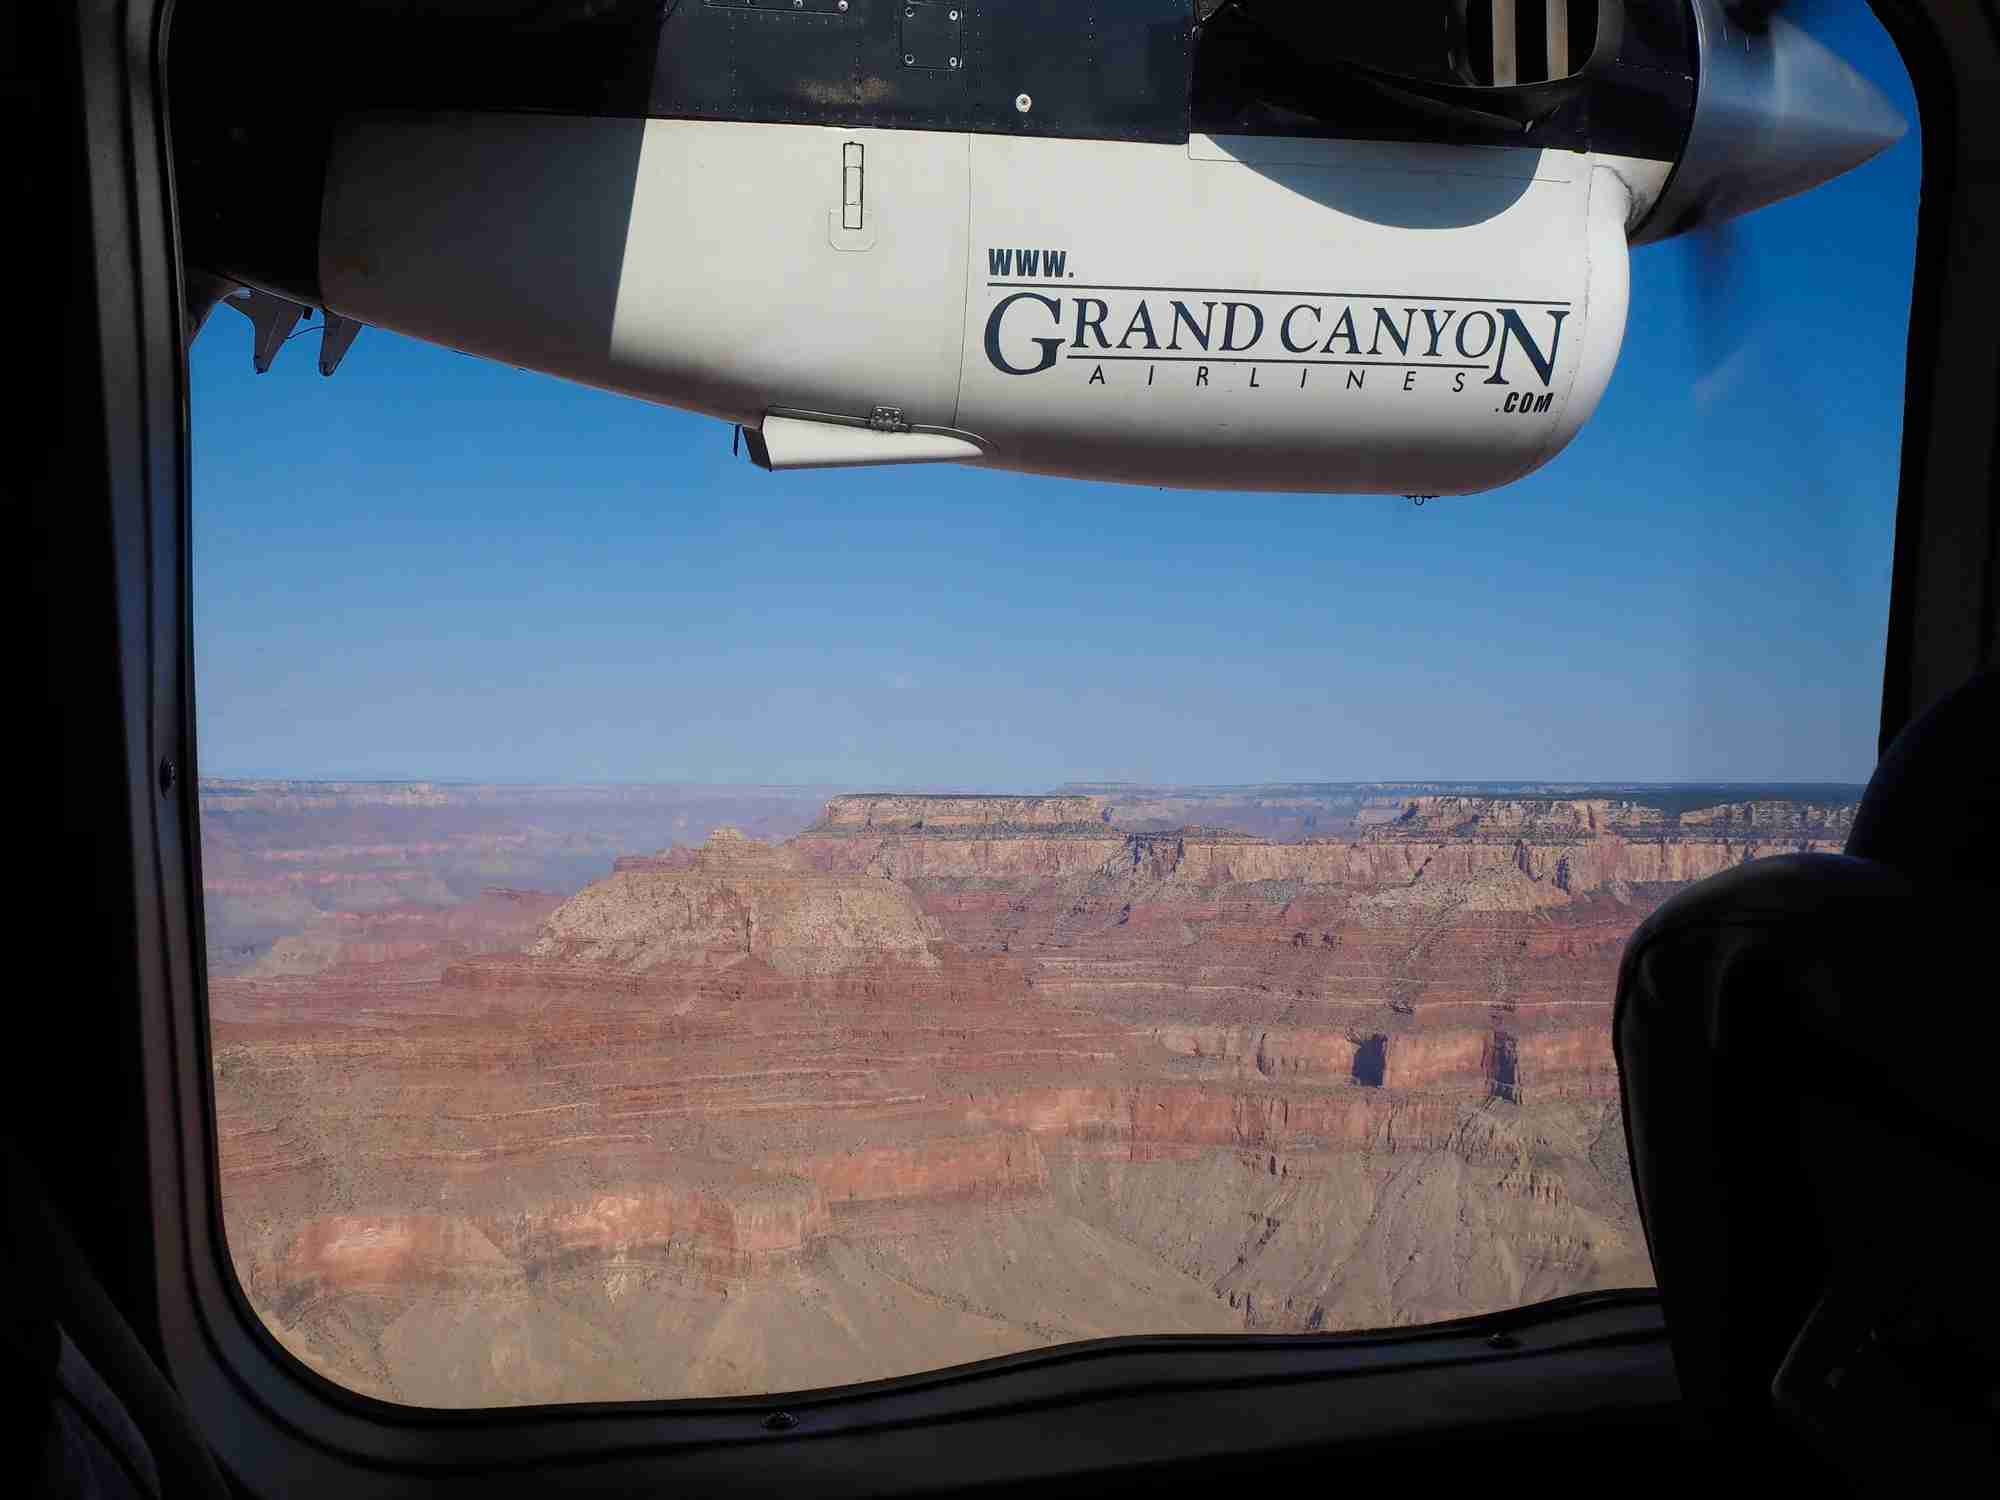 A charter flight sightseeing above the Grand Canyon National Park (Photo by Thamerpic/Getty Images).